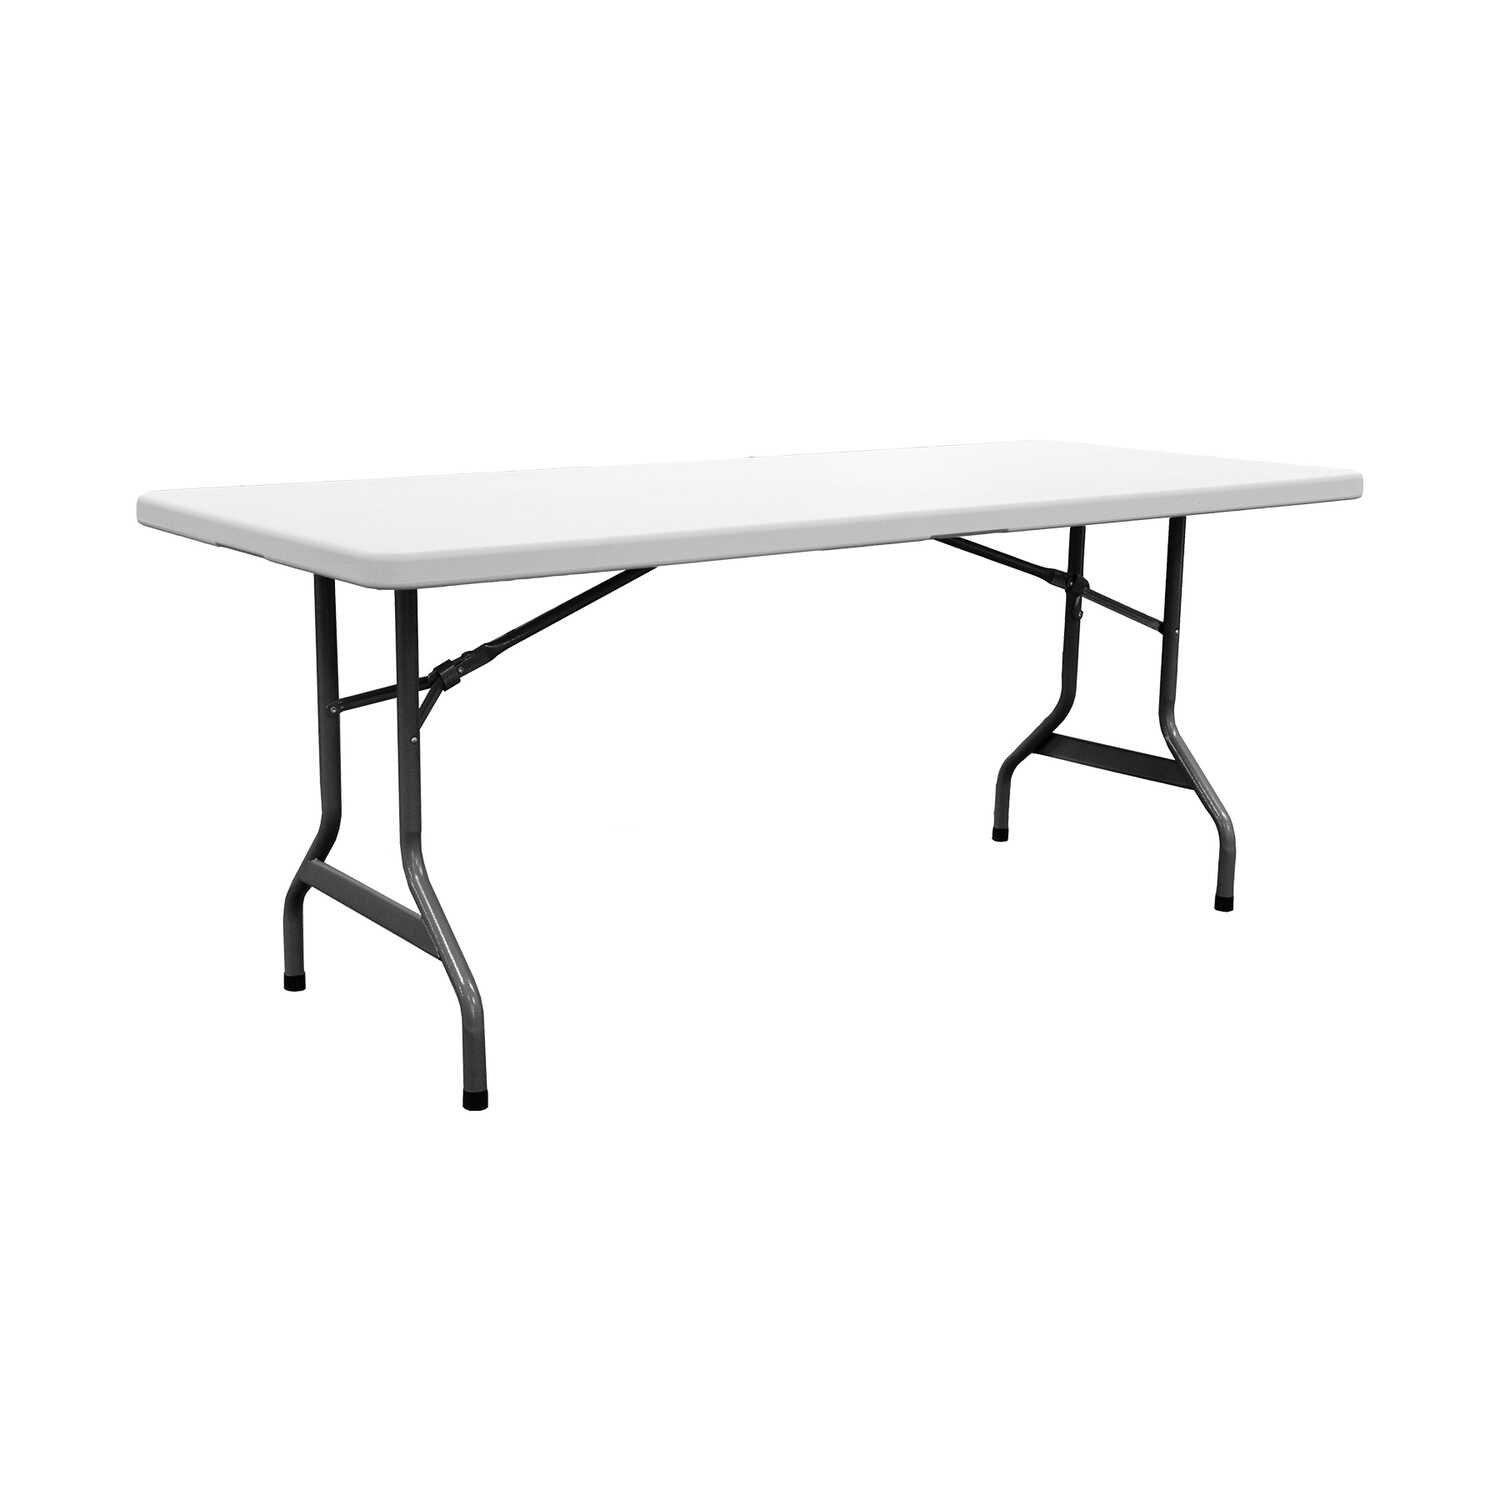 Living Accents  29-5/8 in. W x 72 in. L x 29-1/4 in. H Rectangular  Folding Table